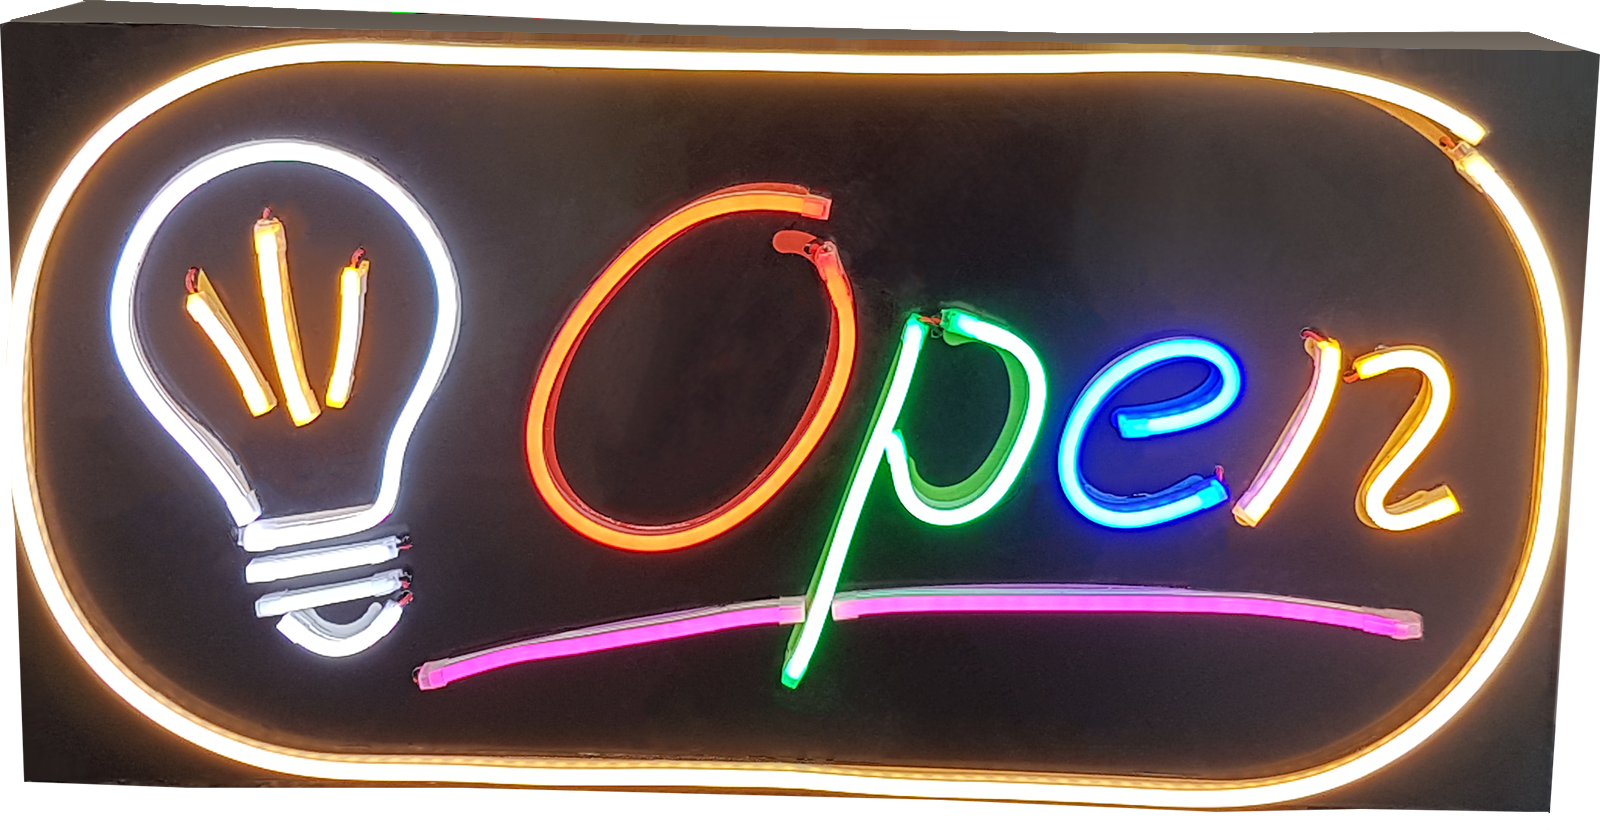 Open Sign LED Neon Flex Signage